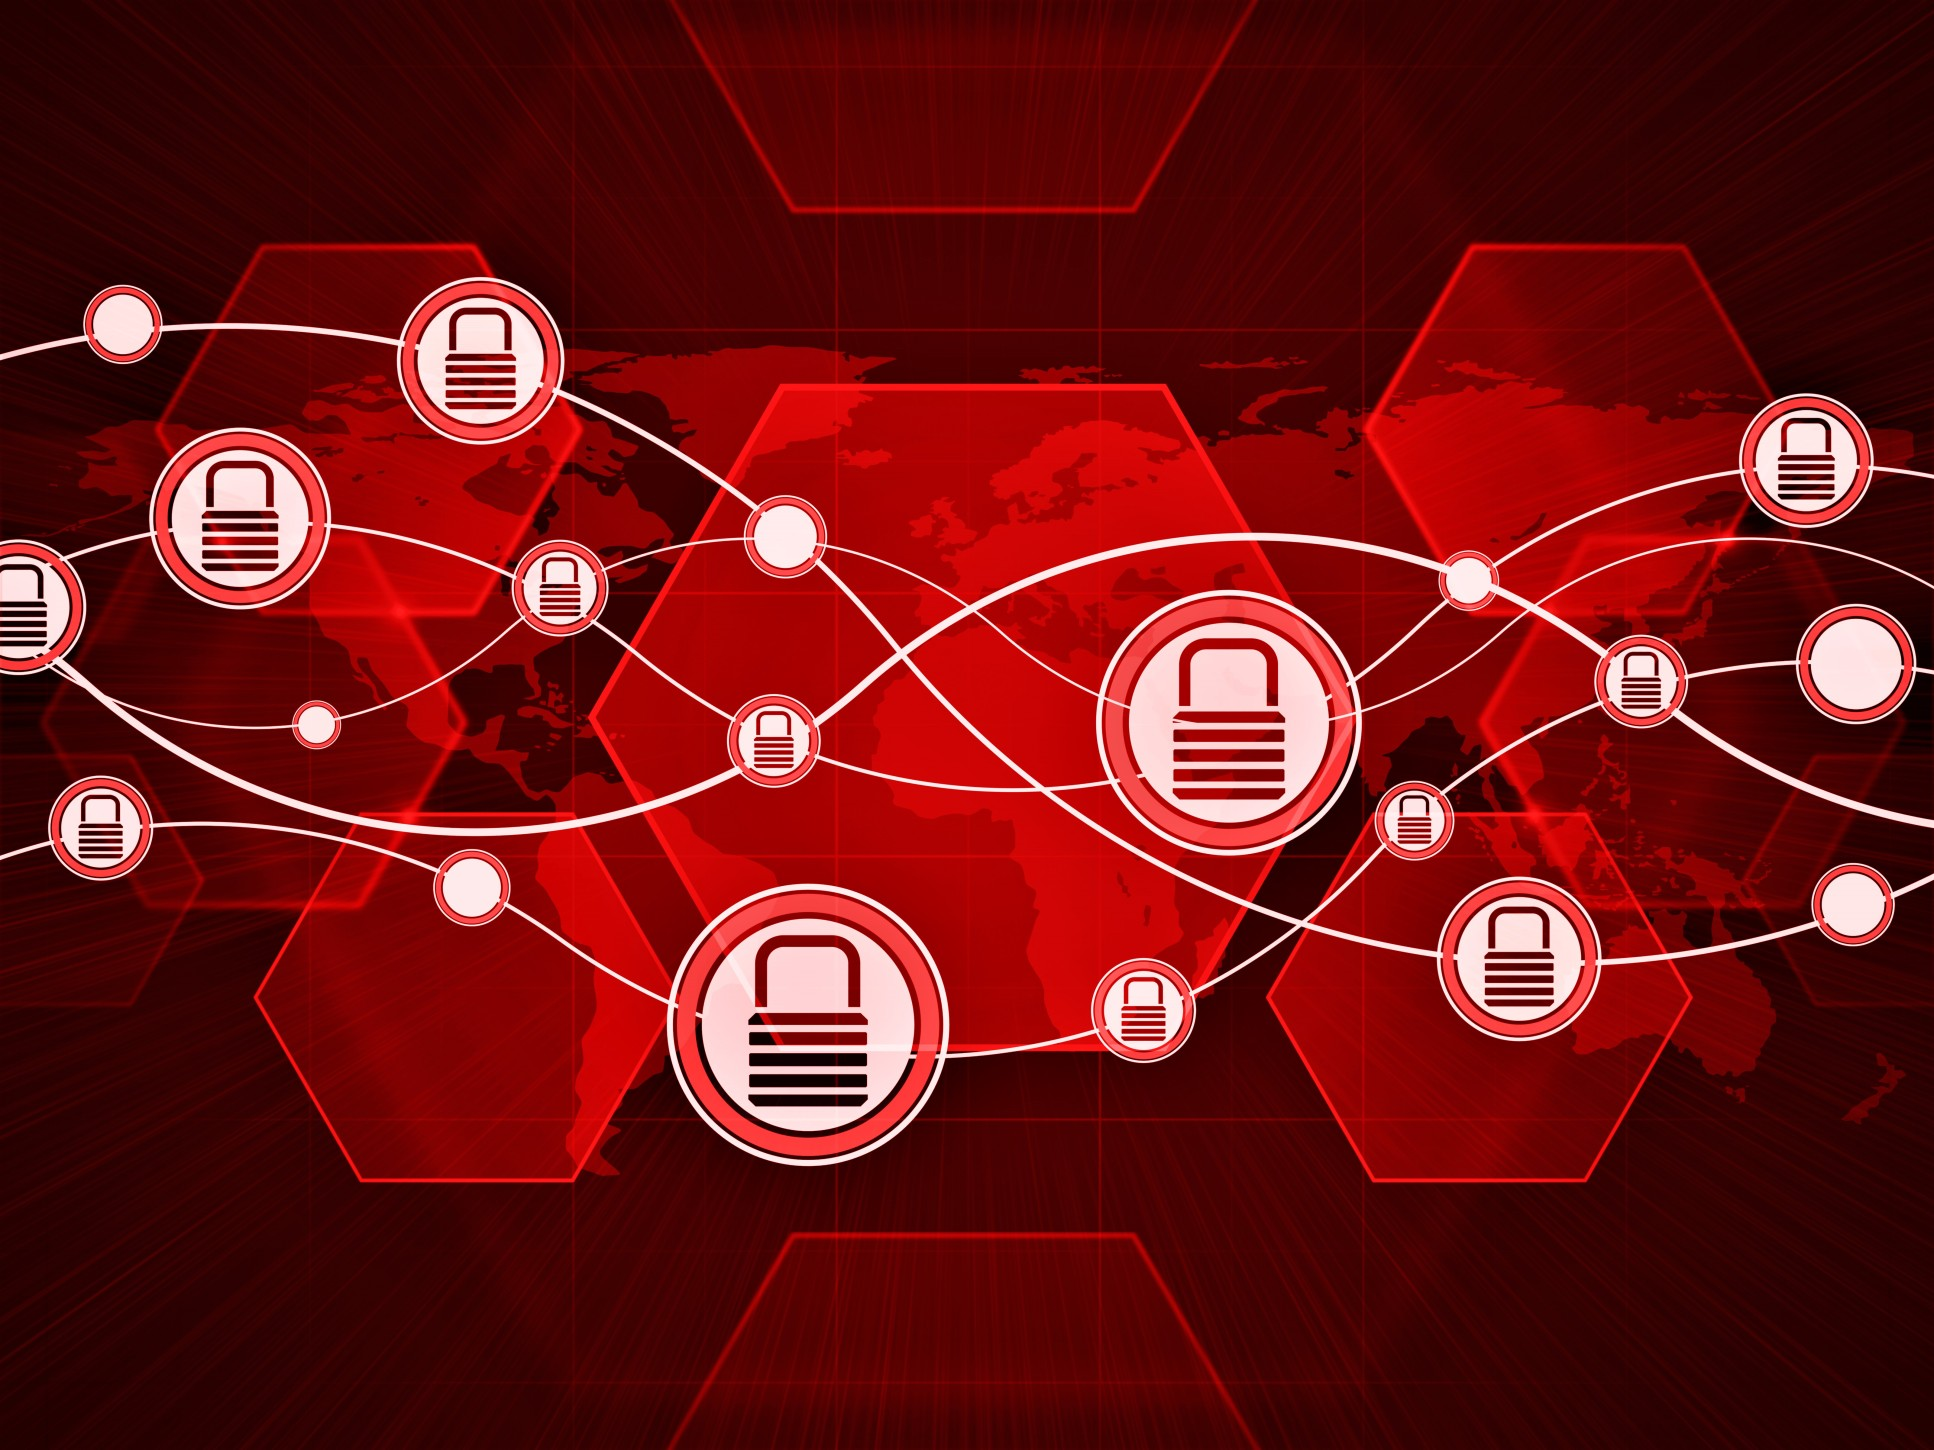 83% Of Enterprises Transformed Their Cybersecurity In 2020